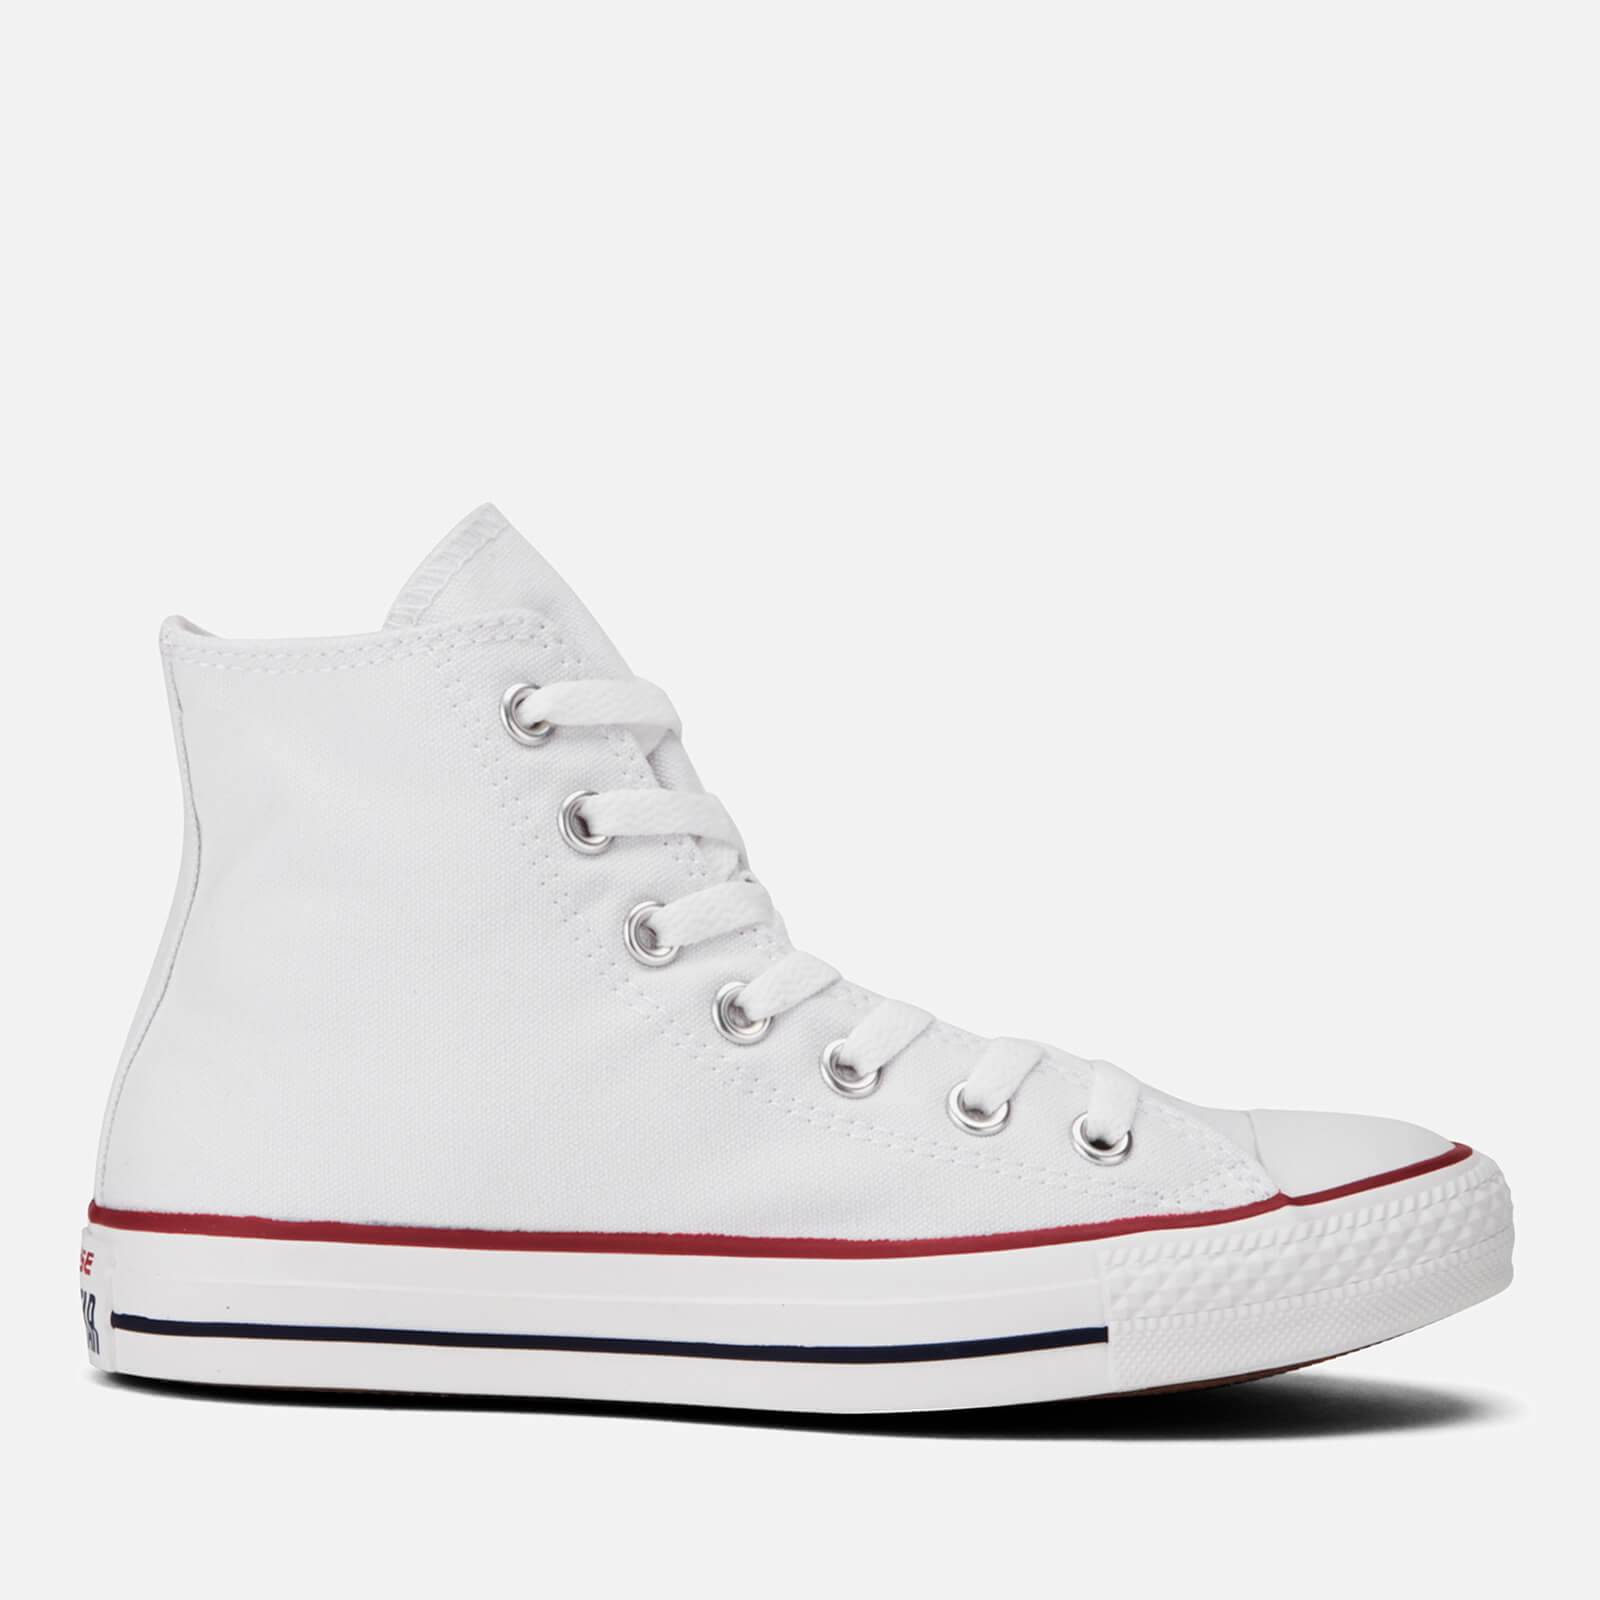 Converse Chuck Taylor All Star Canvas Hi-Top Trainers - Optical White - UK 12